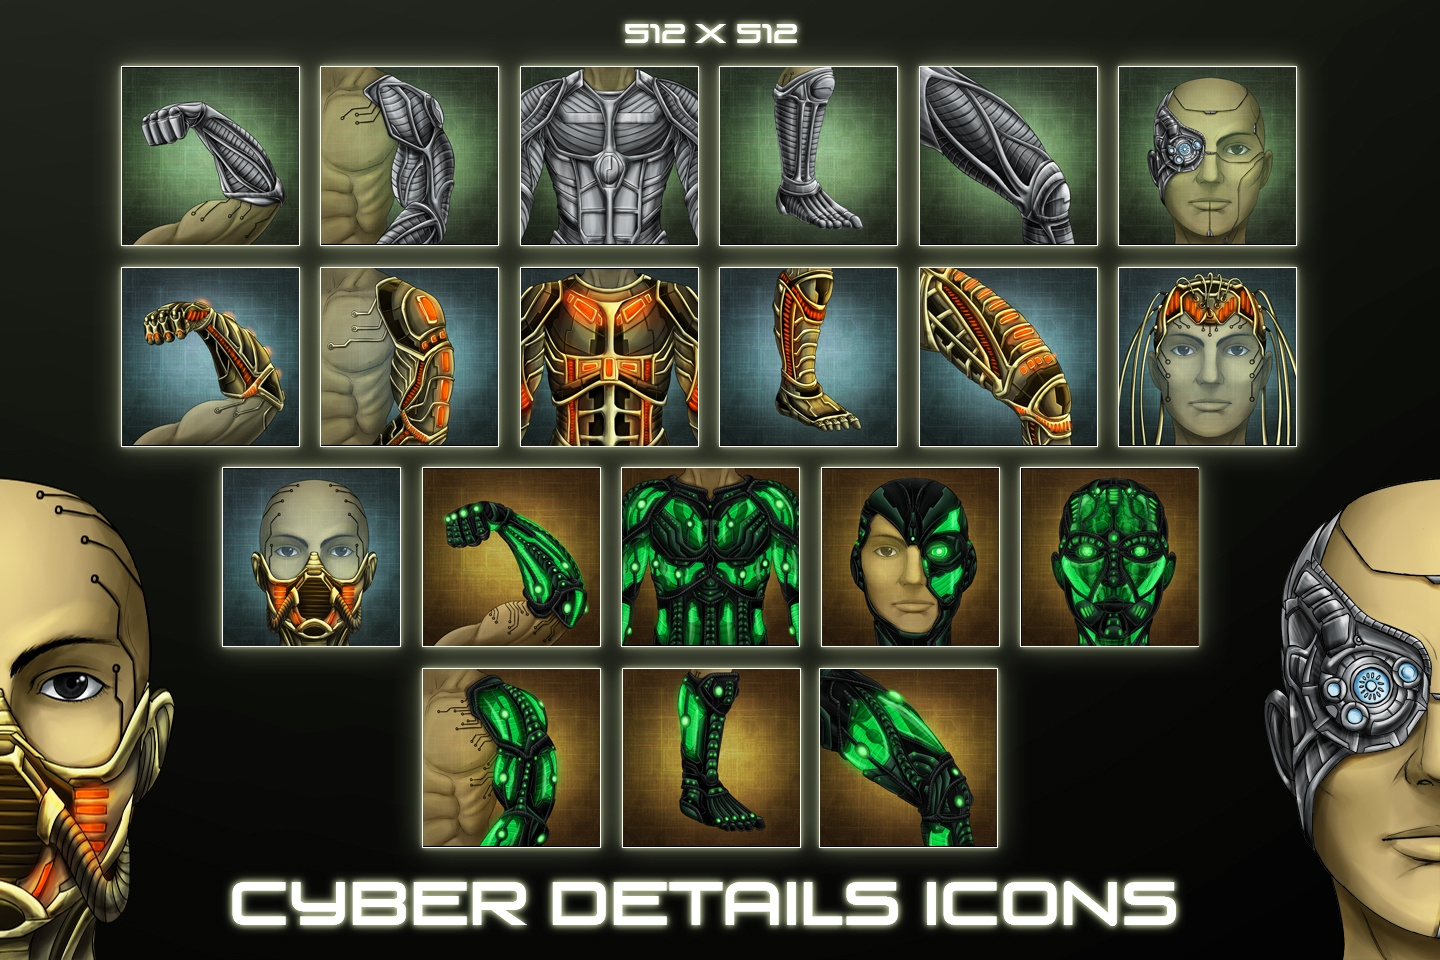 Sci-Fi Cyber Details Icons